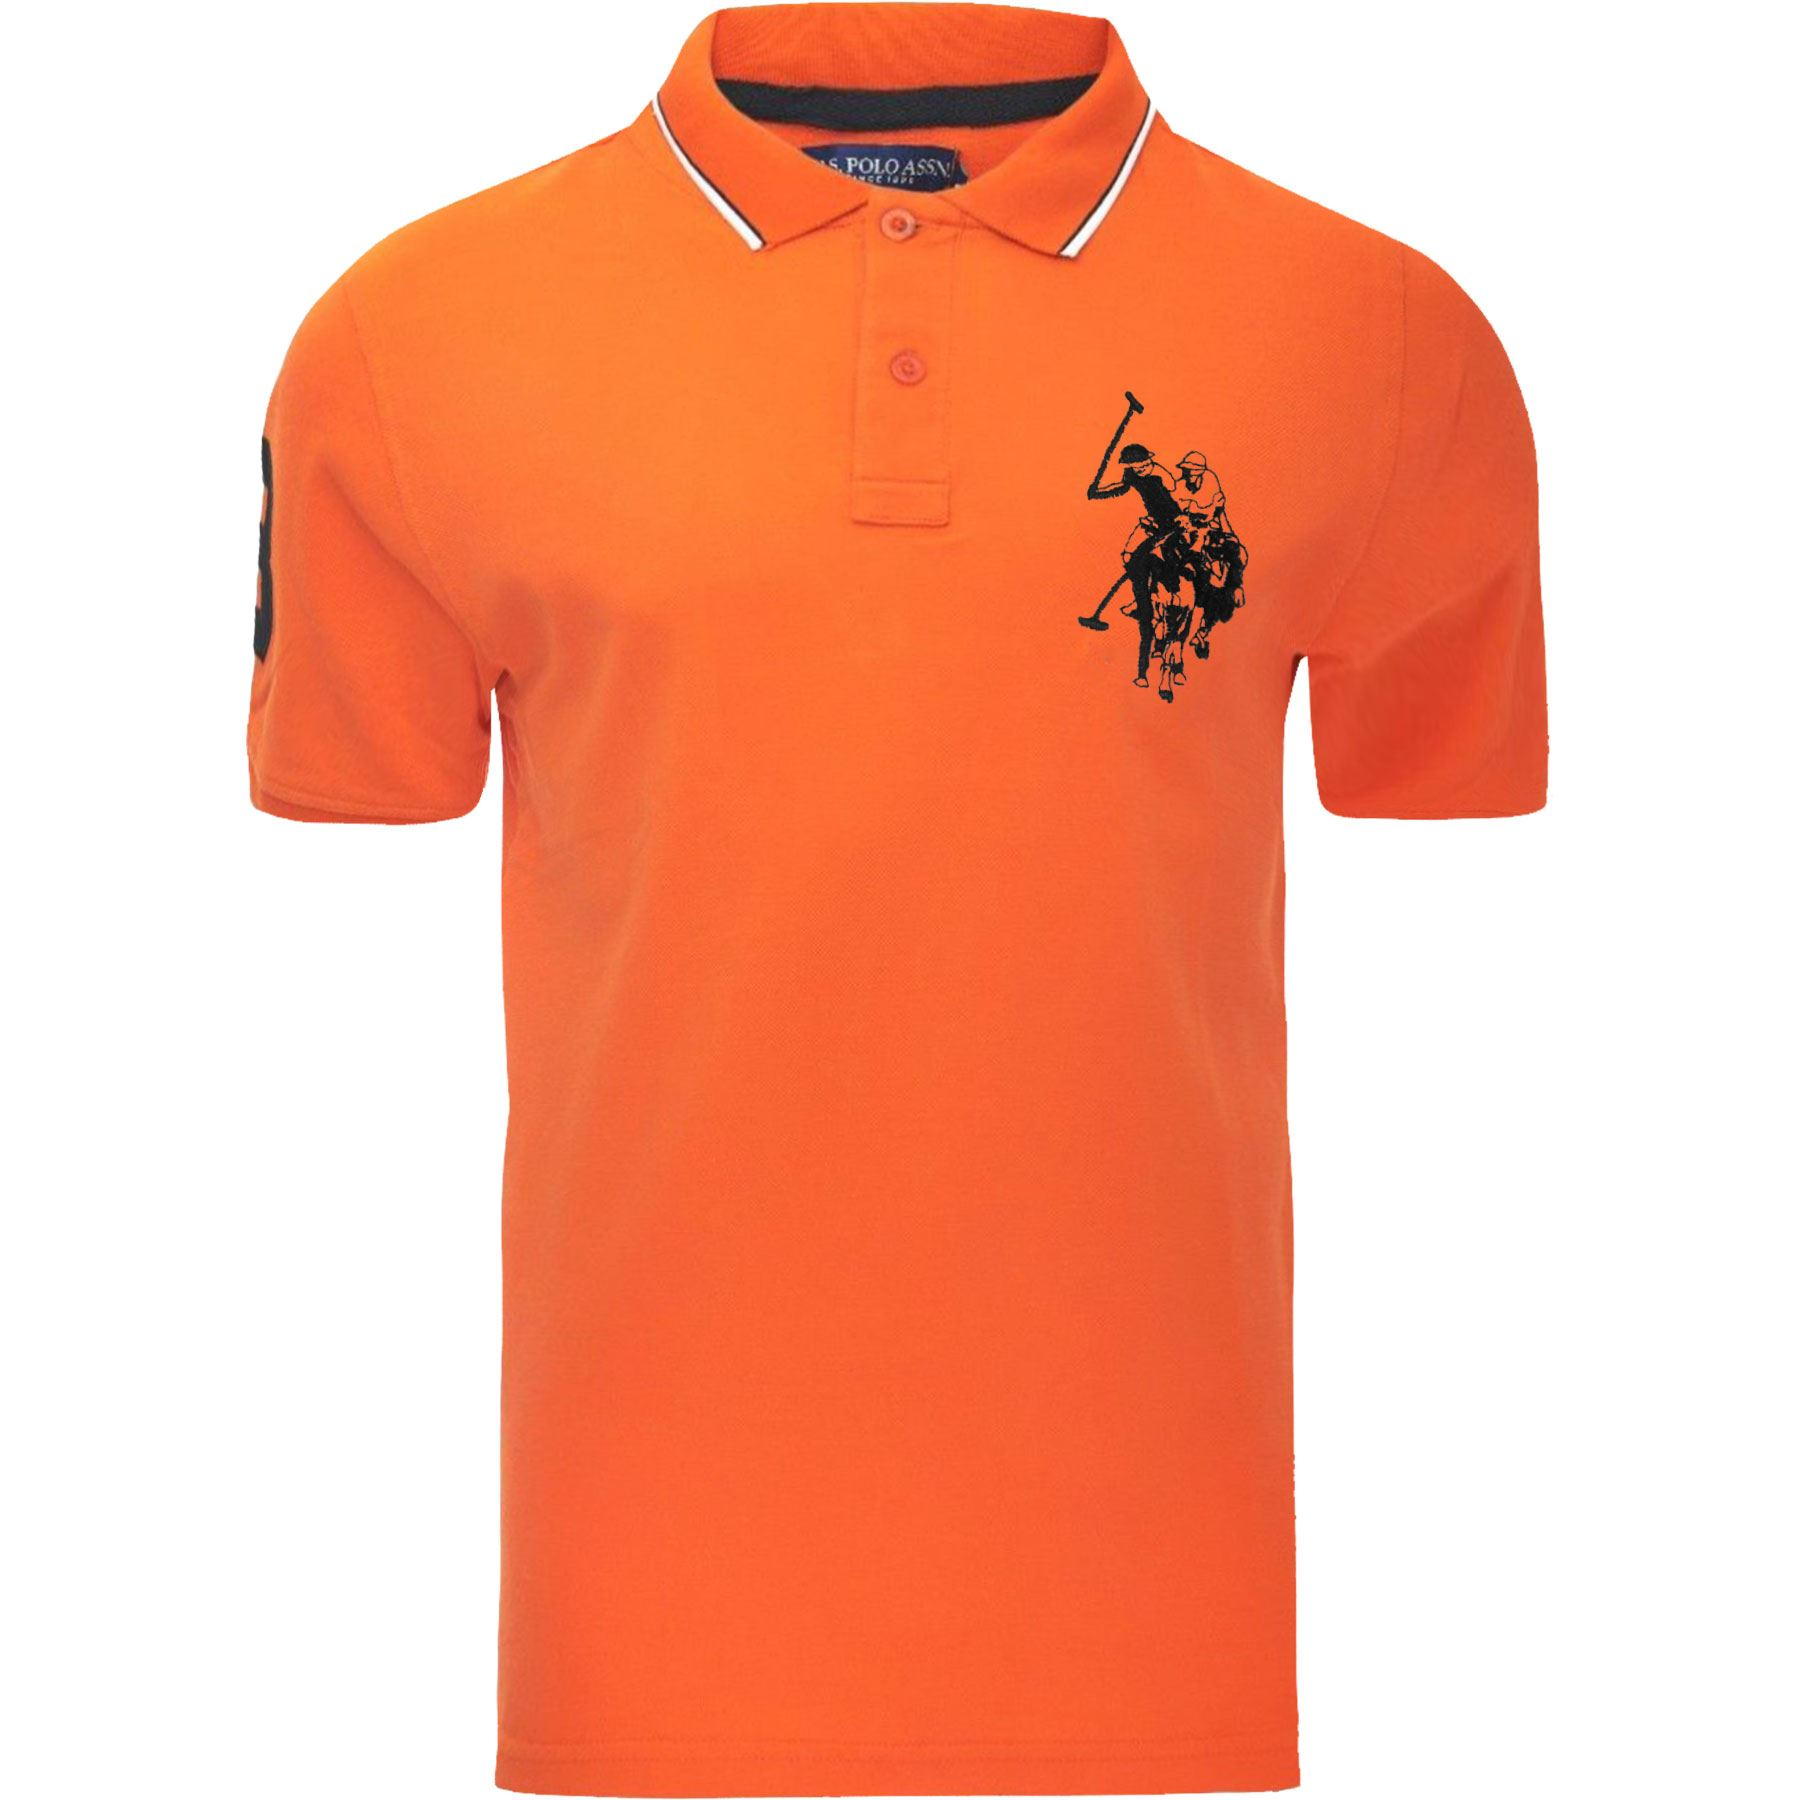 New mens us polo assn pique t shirt shirt branded top for Branded polo t shirts